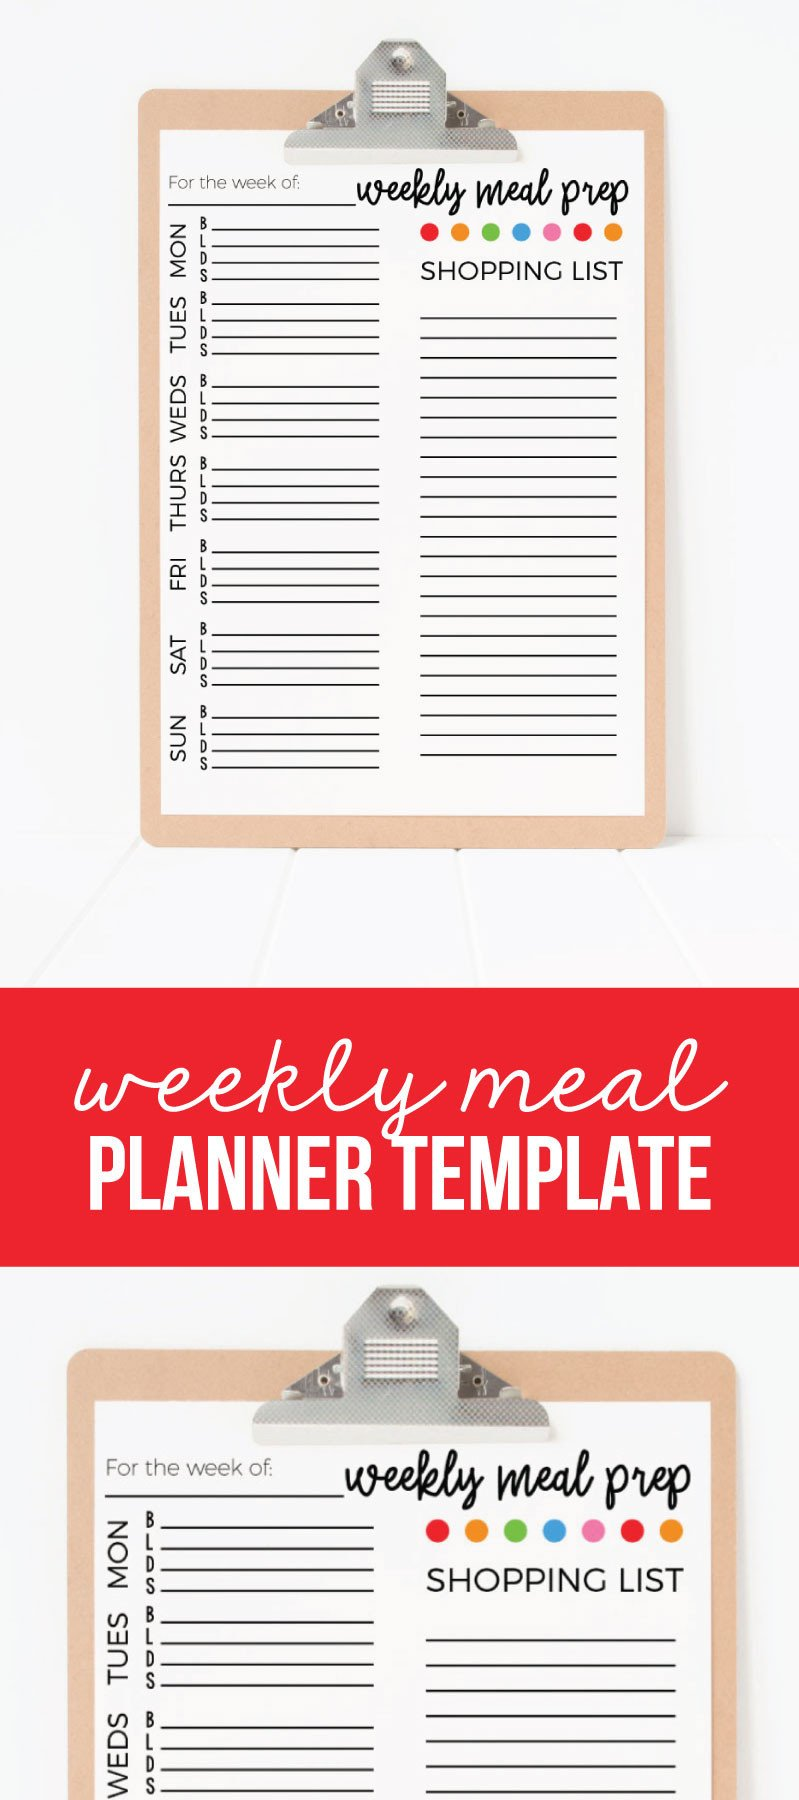 Daily Meal Plan Template Weekly Meal Planner Template